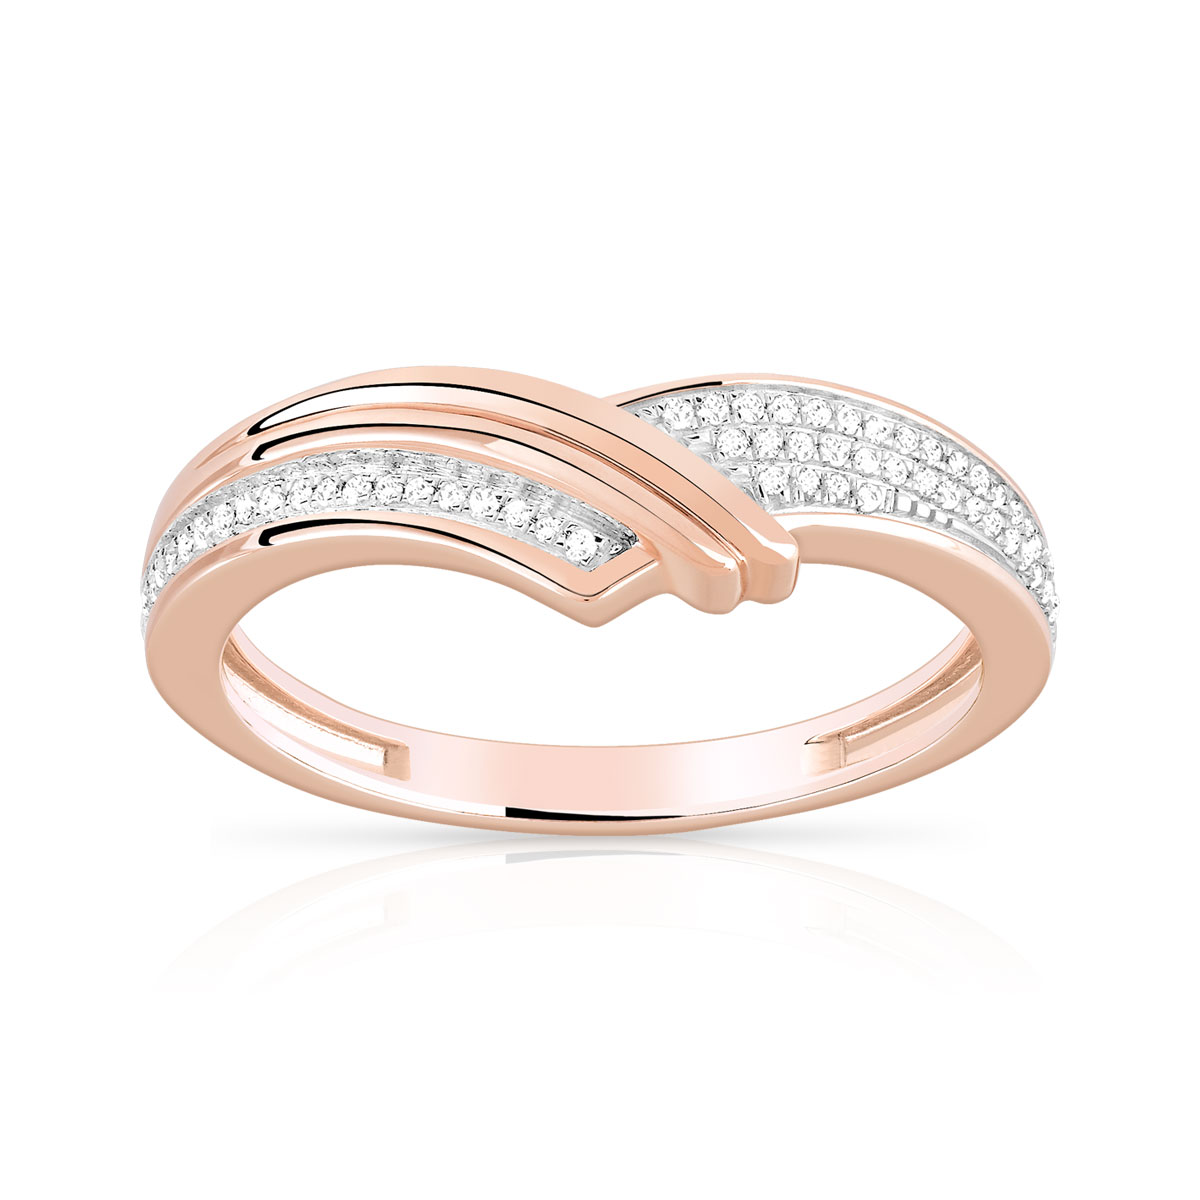 Bague or 375 rose diamant - vue 1